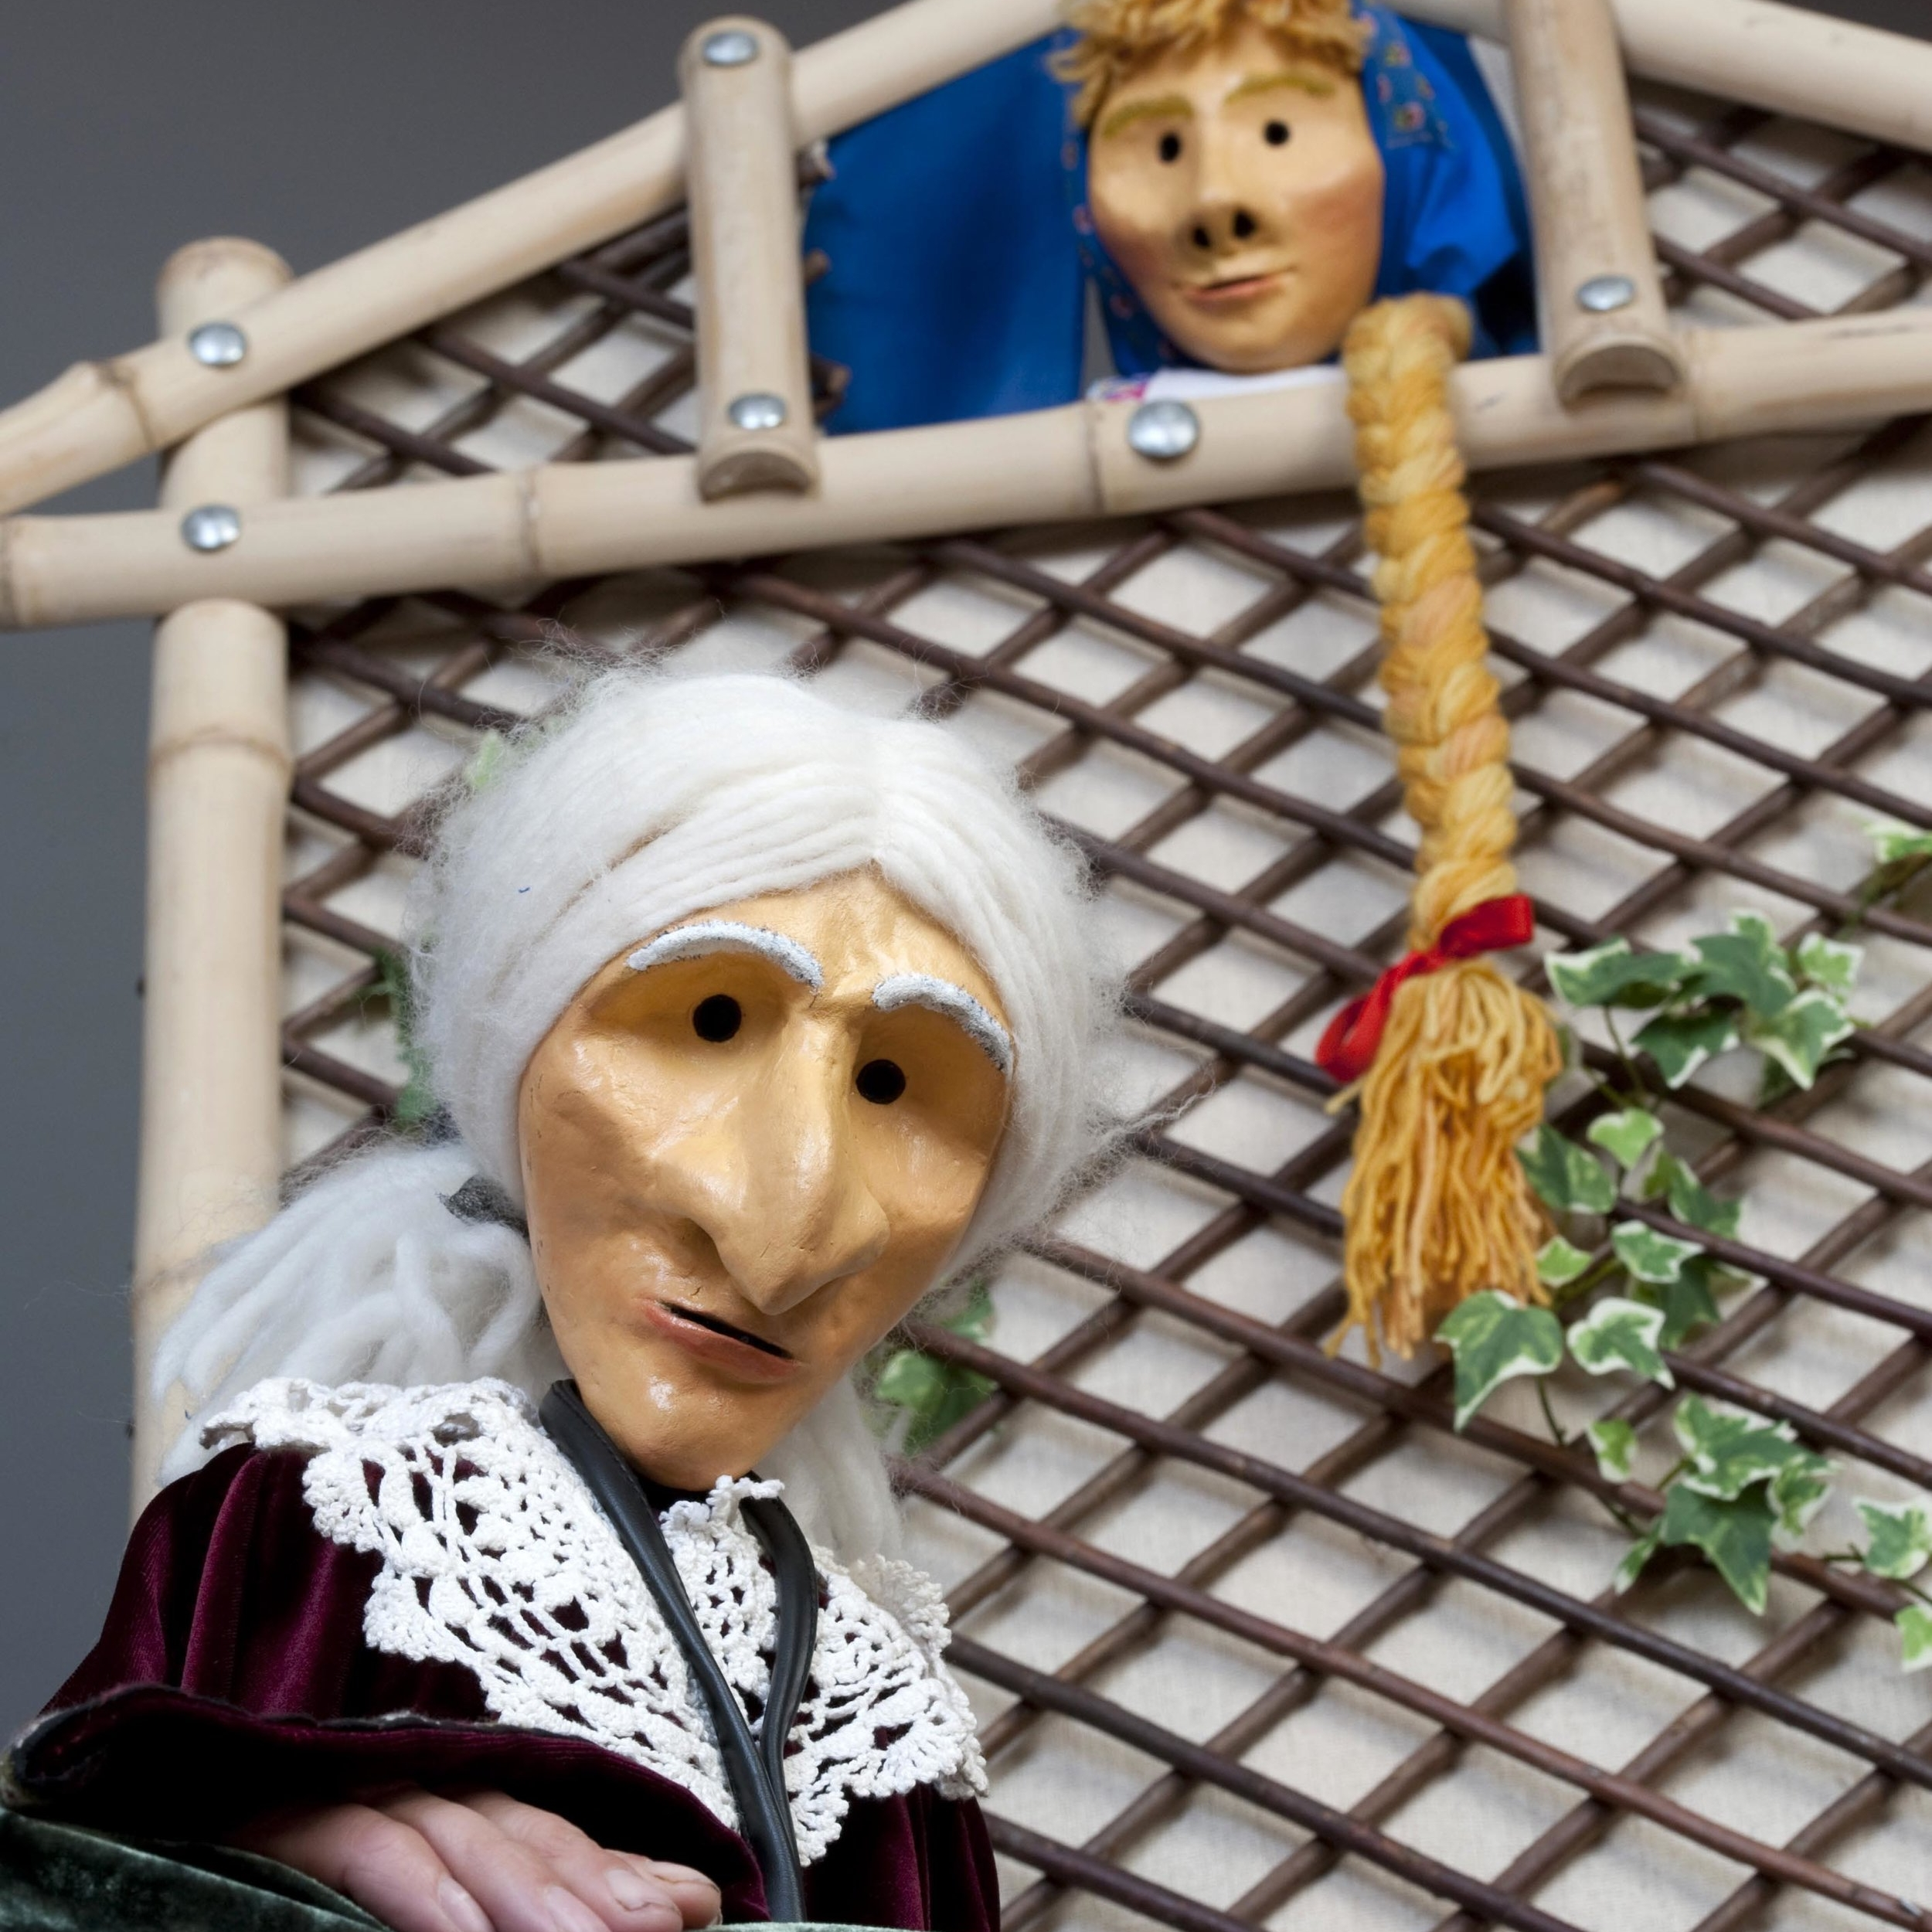 Clydebuilt Puppets - Firmly established (since 1987), Clydebuilt is a leading Scottish Puppet Theatre Company. The company tour throughout the UK and Europe. Clydebuilt have also toured to the Middle East and visited China.